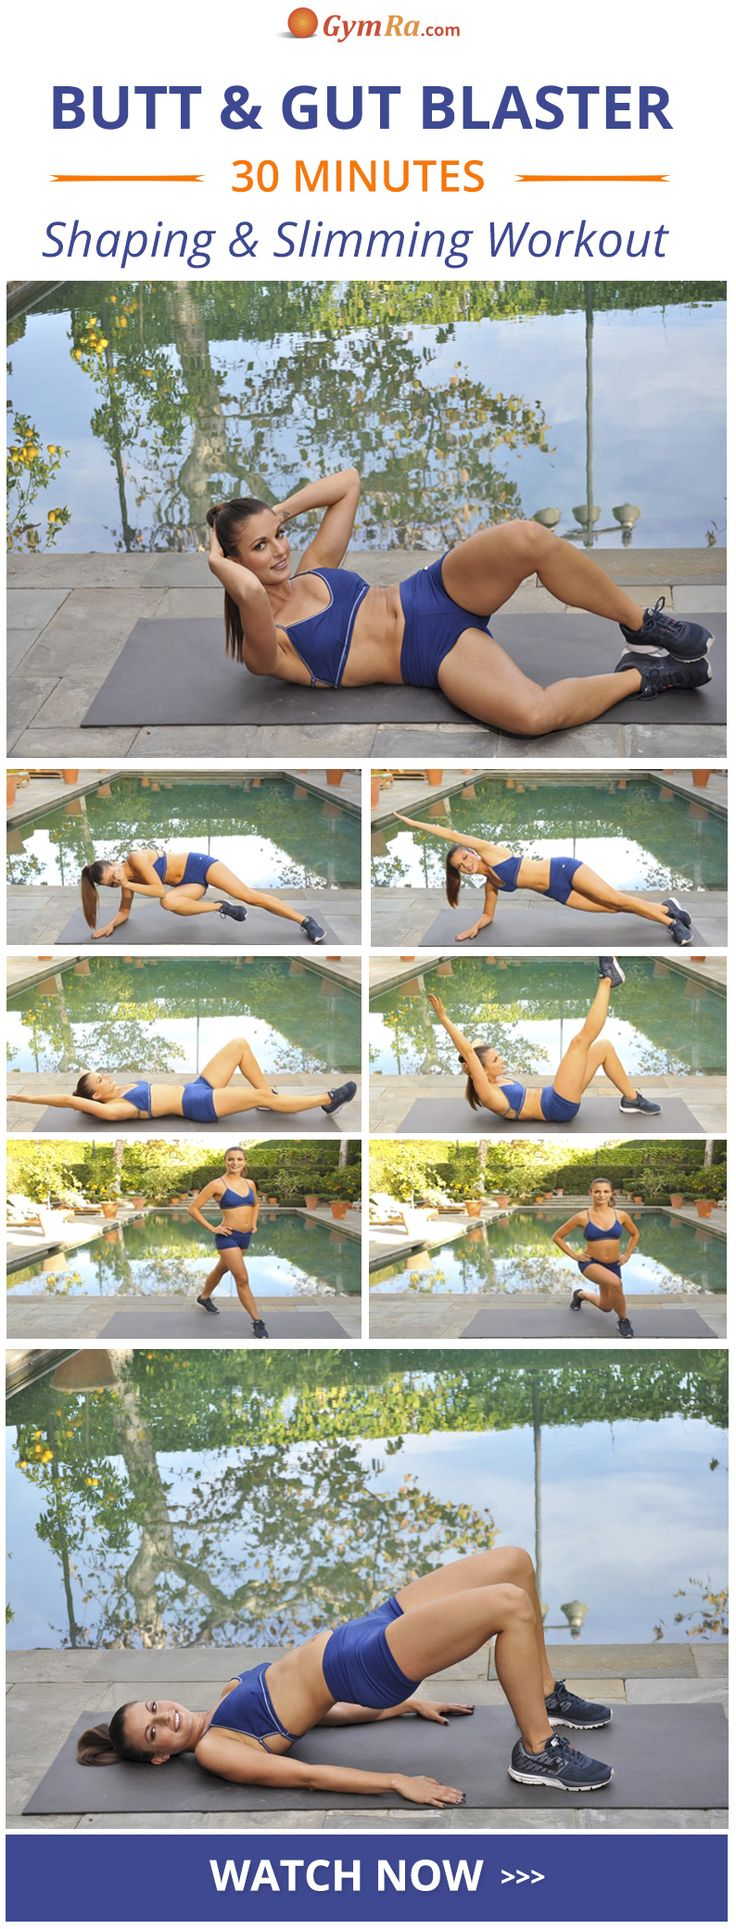 These at home glutes and abs exercises are perfect for sculpting and trimming your both your mid-section & lower body. Build a better booty & a sculpted waist in no time by doing this workout 3-4 times a week on non-consecutive days.